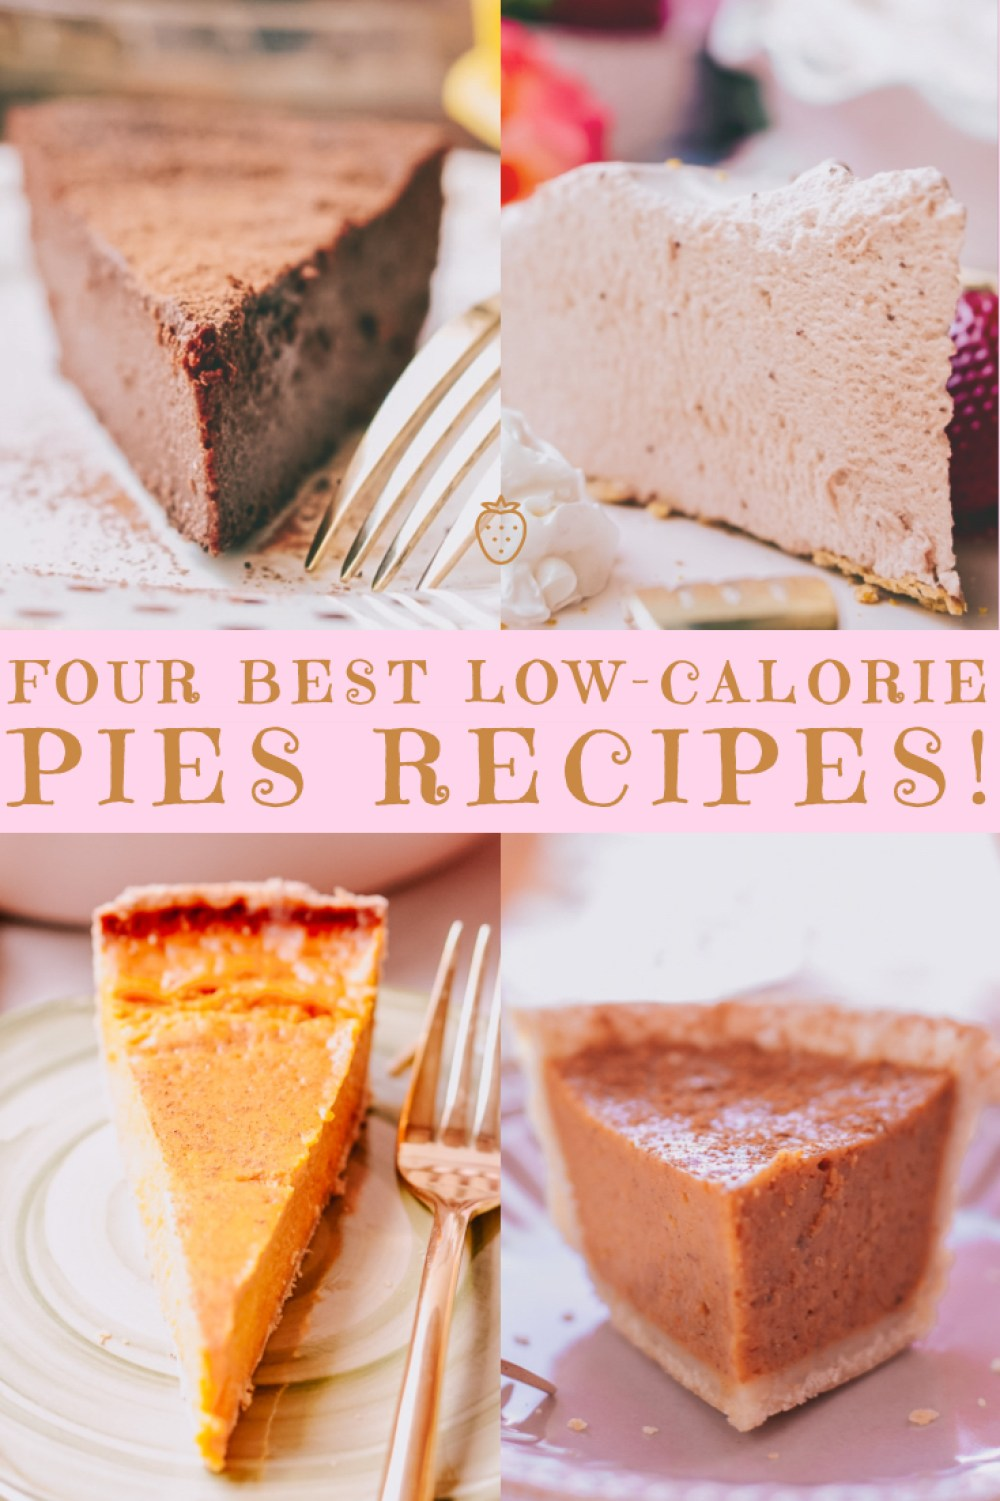 FOUR BEST LOW-CALORIE PIES RECIPES FOR THE PIE DAY!